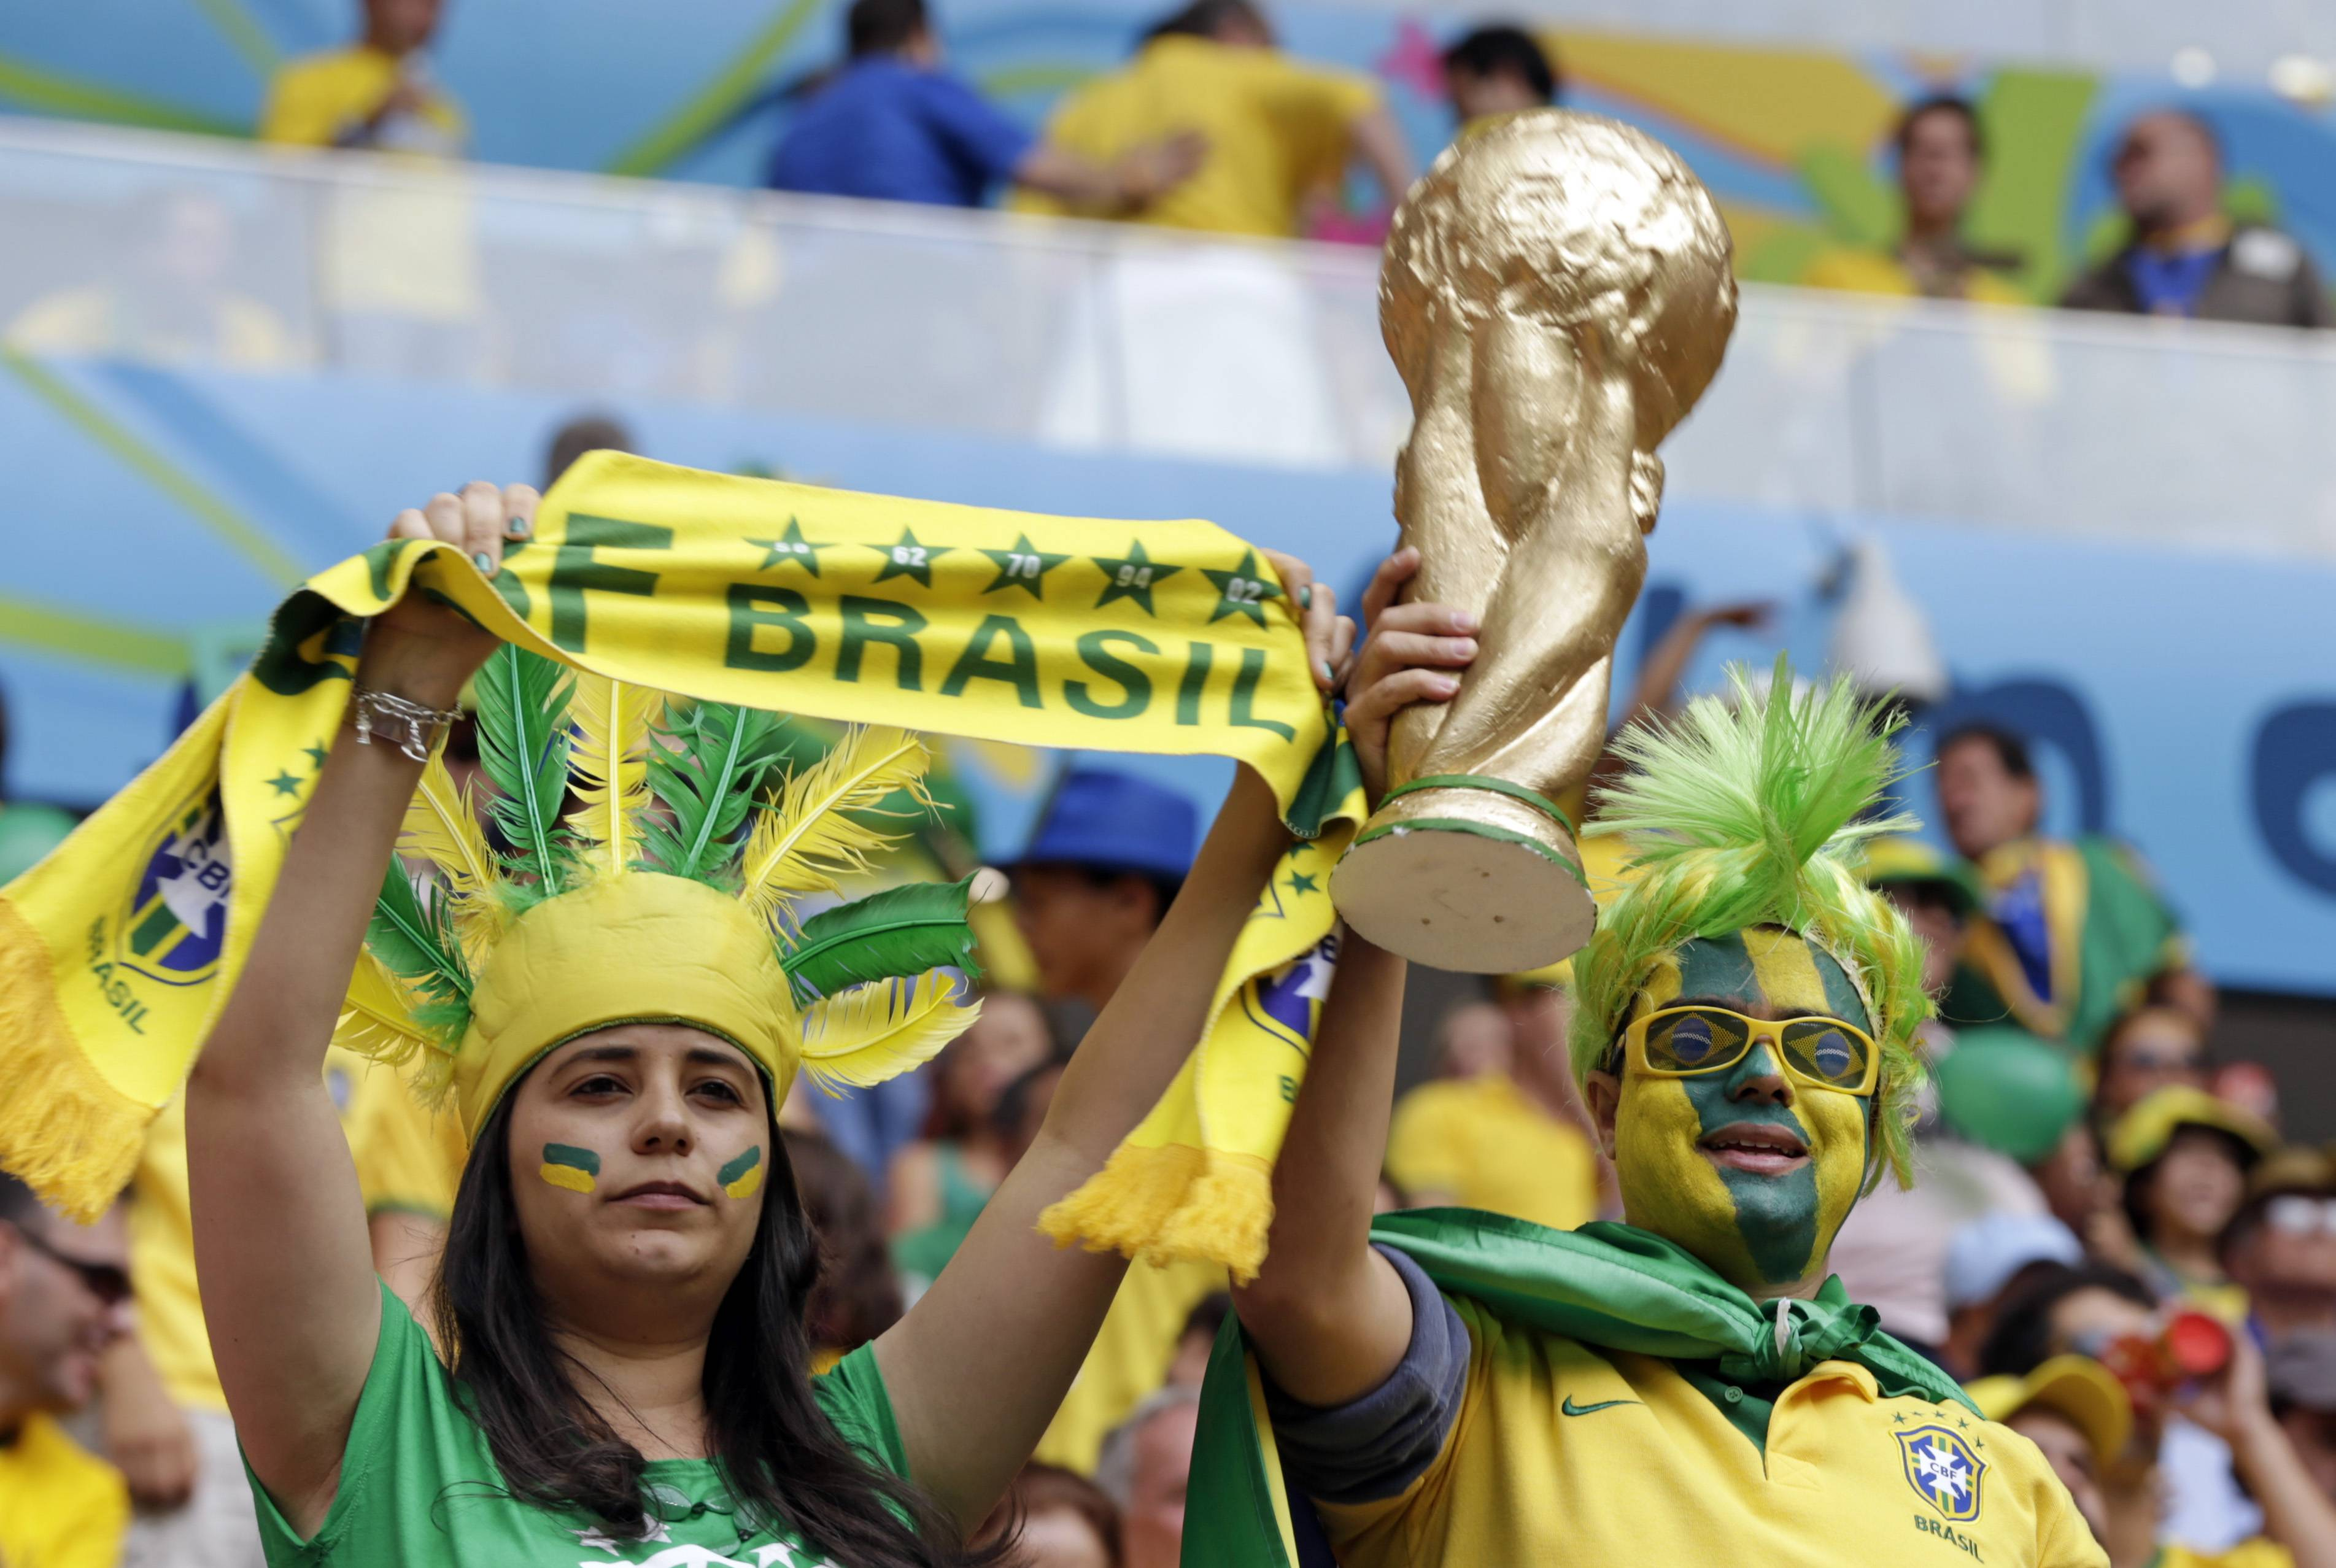 The economic impact the World Cup had on Brazil differs with who one talks to in that country, a North Central College student found during a three-week study this summer.